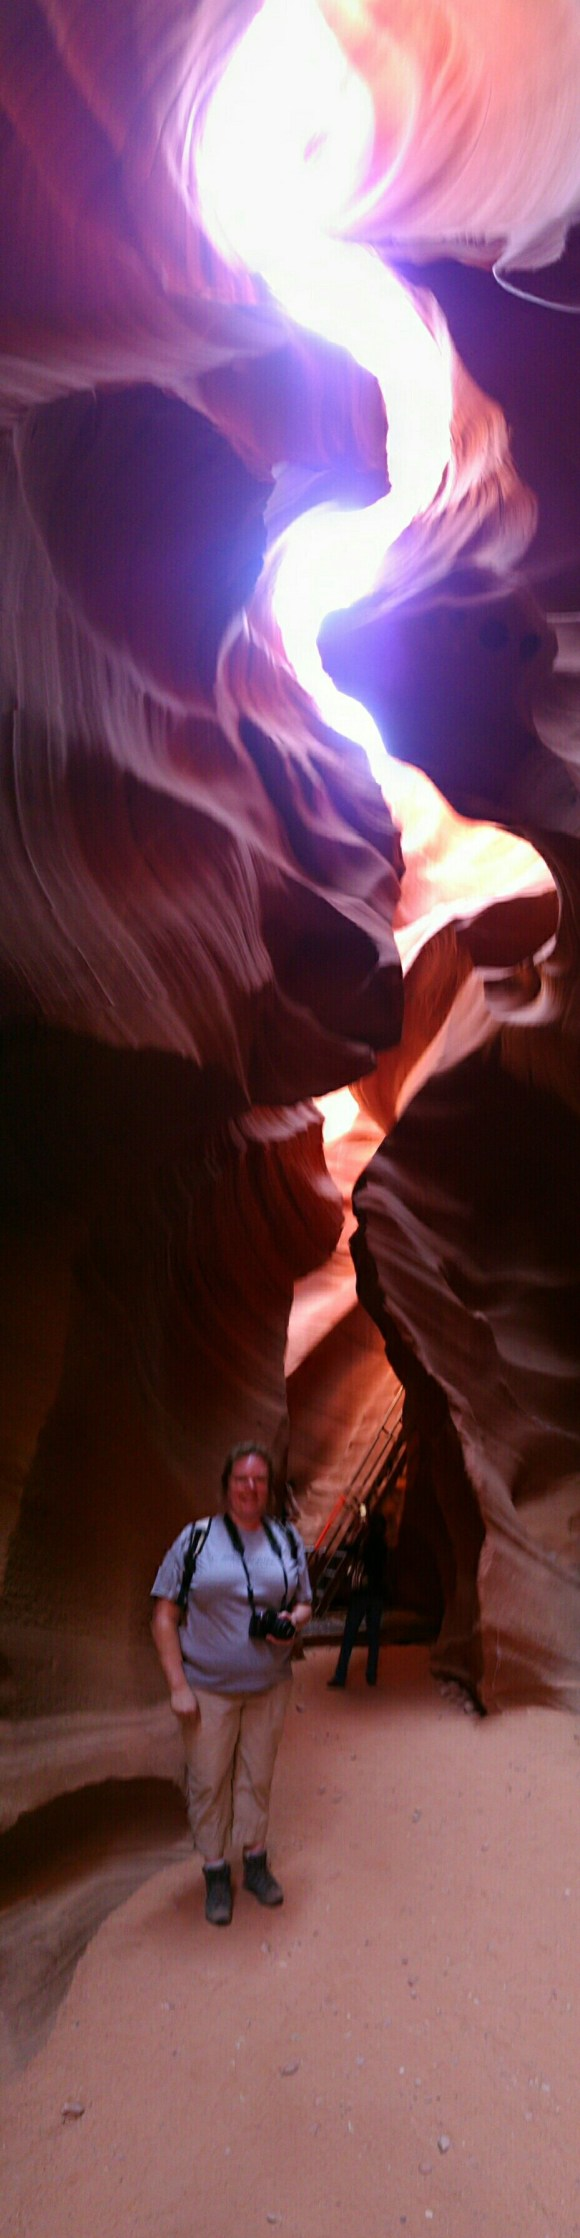 Touring Lower Antelope Canyons, Page Arizona